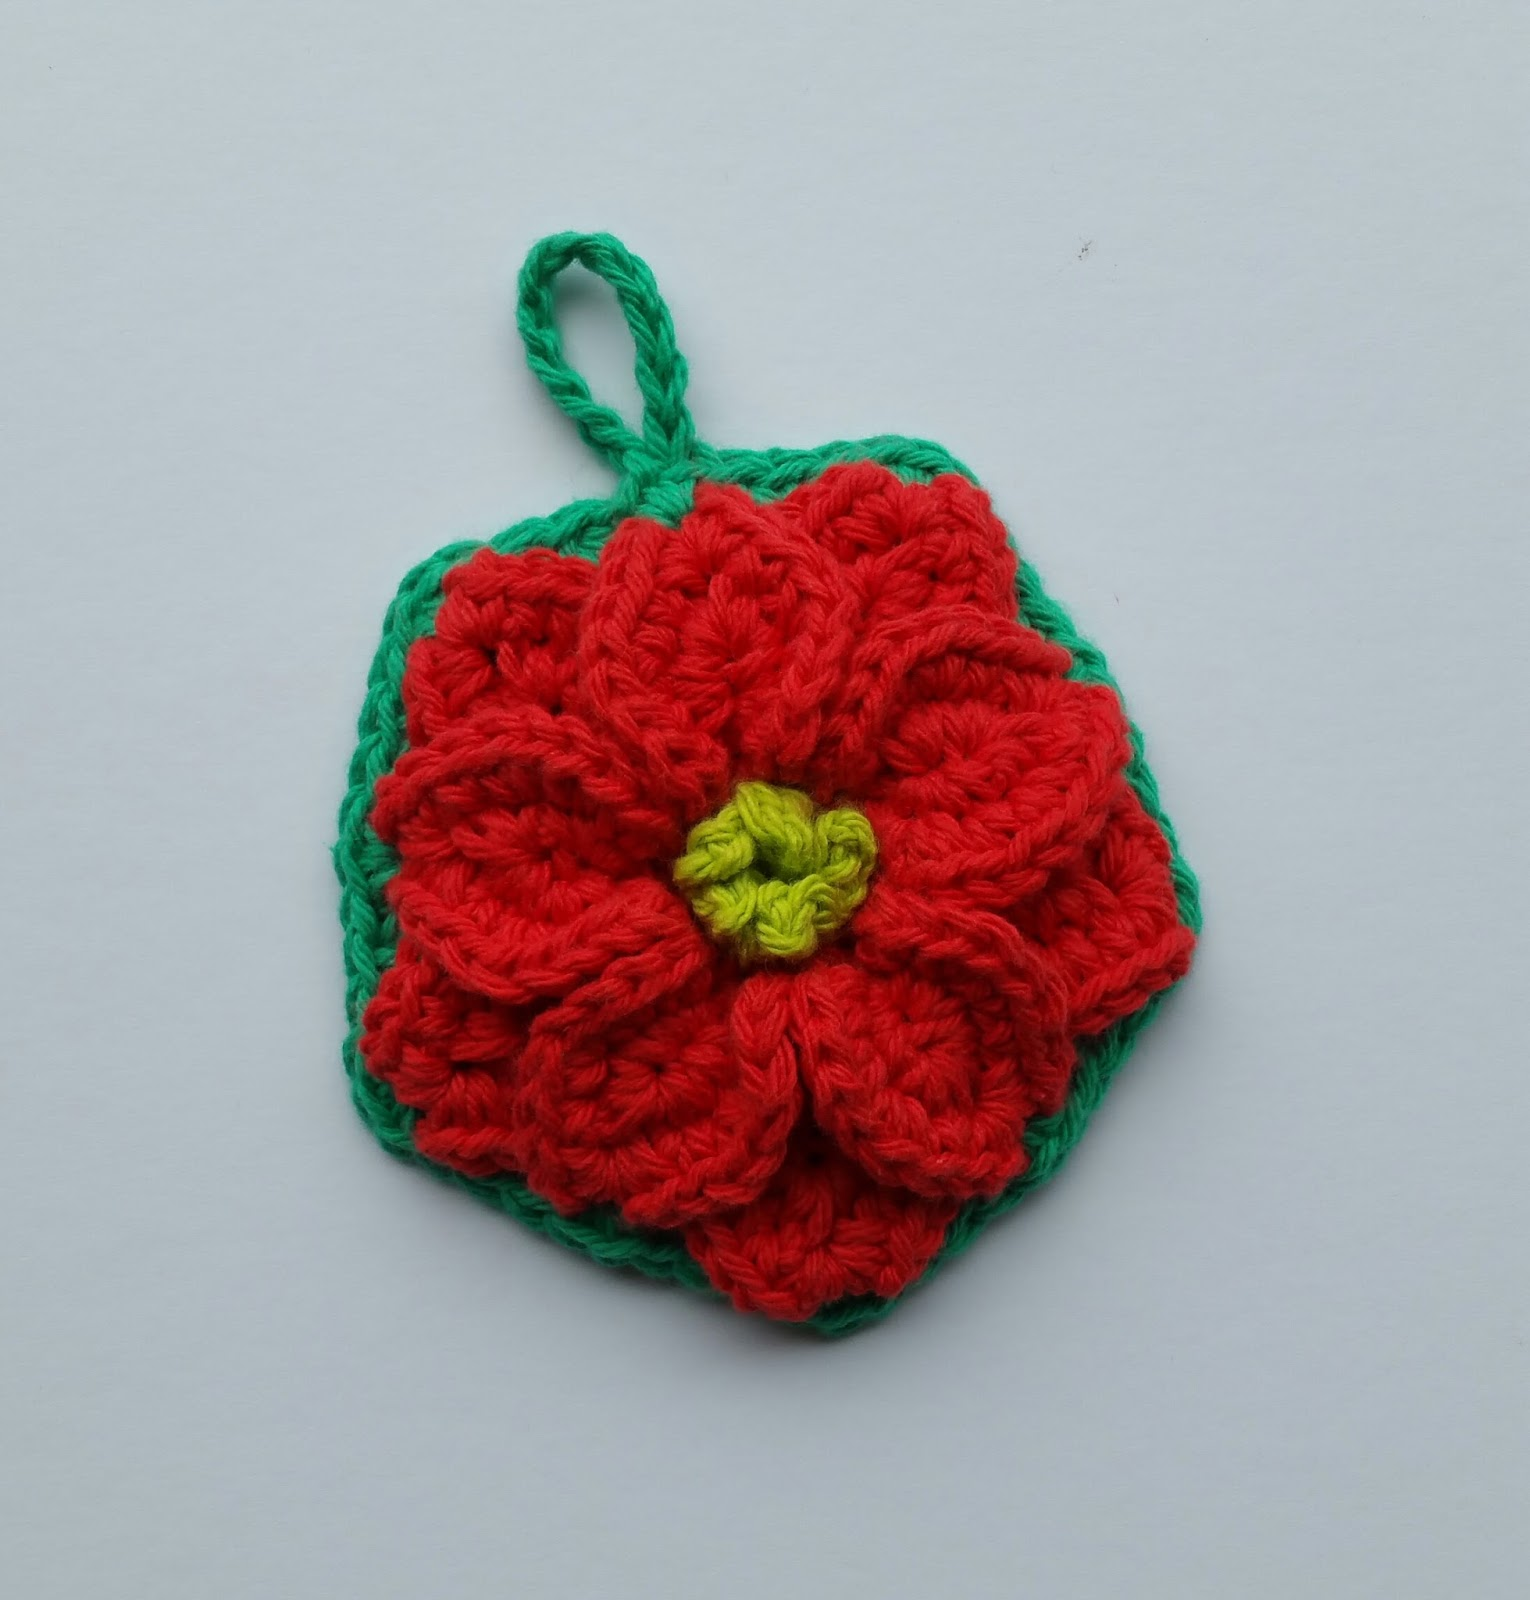 Chie Crochets & Knits too!: Ornament fun #4 - Poinsettia Tawashi